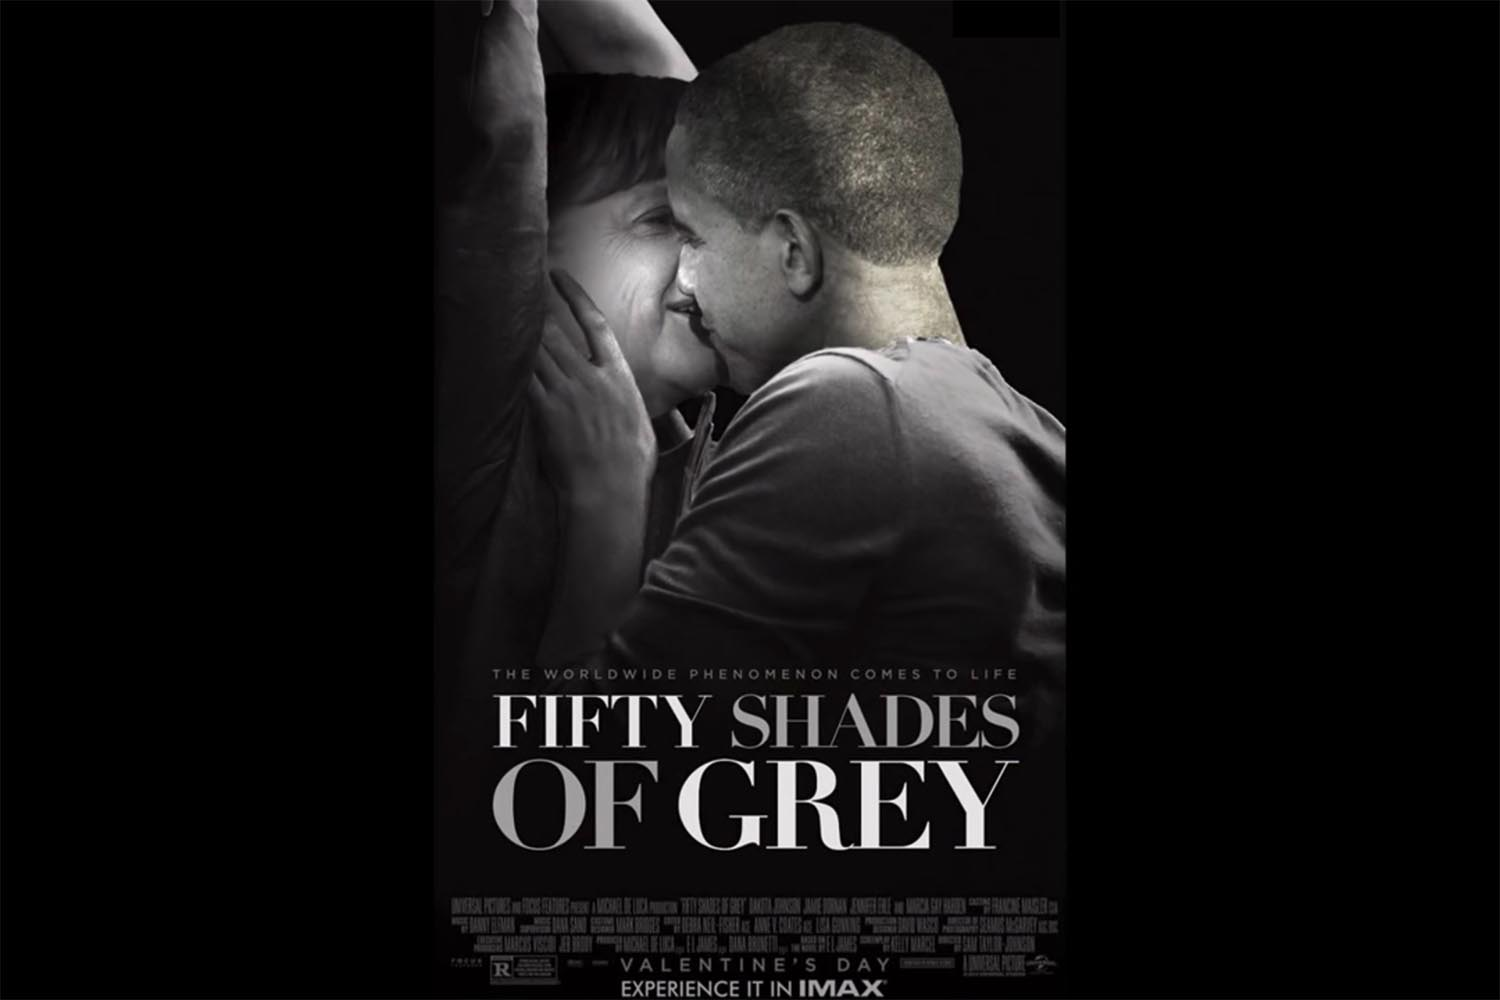 Politicians top 10 fake movie posters capitol geisha for 50 shades of grey movie sequel